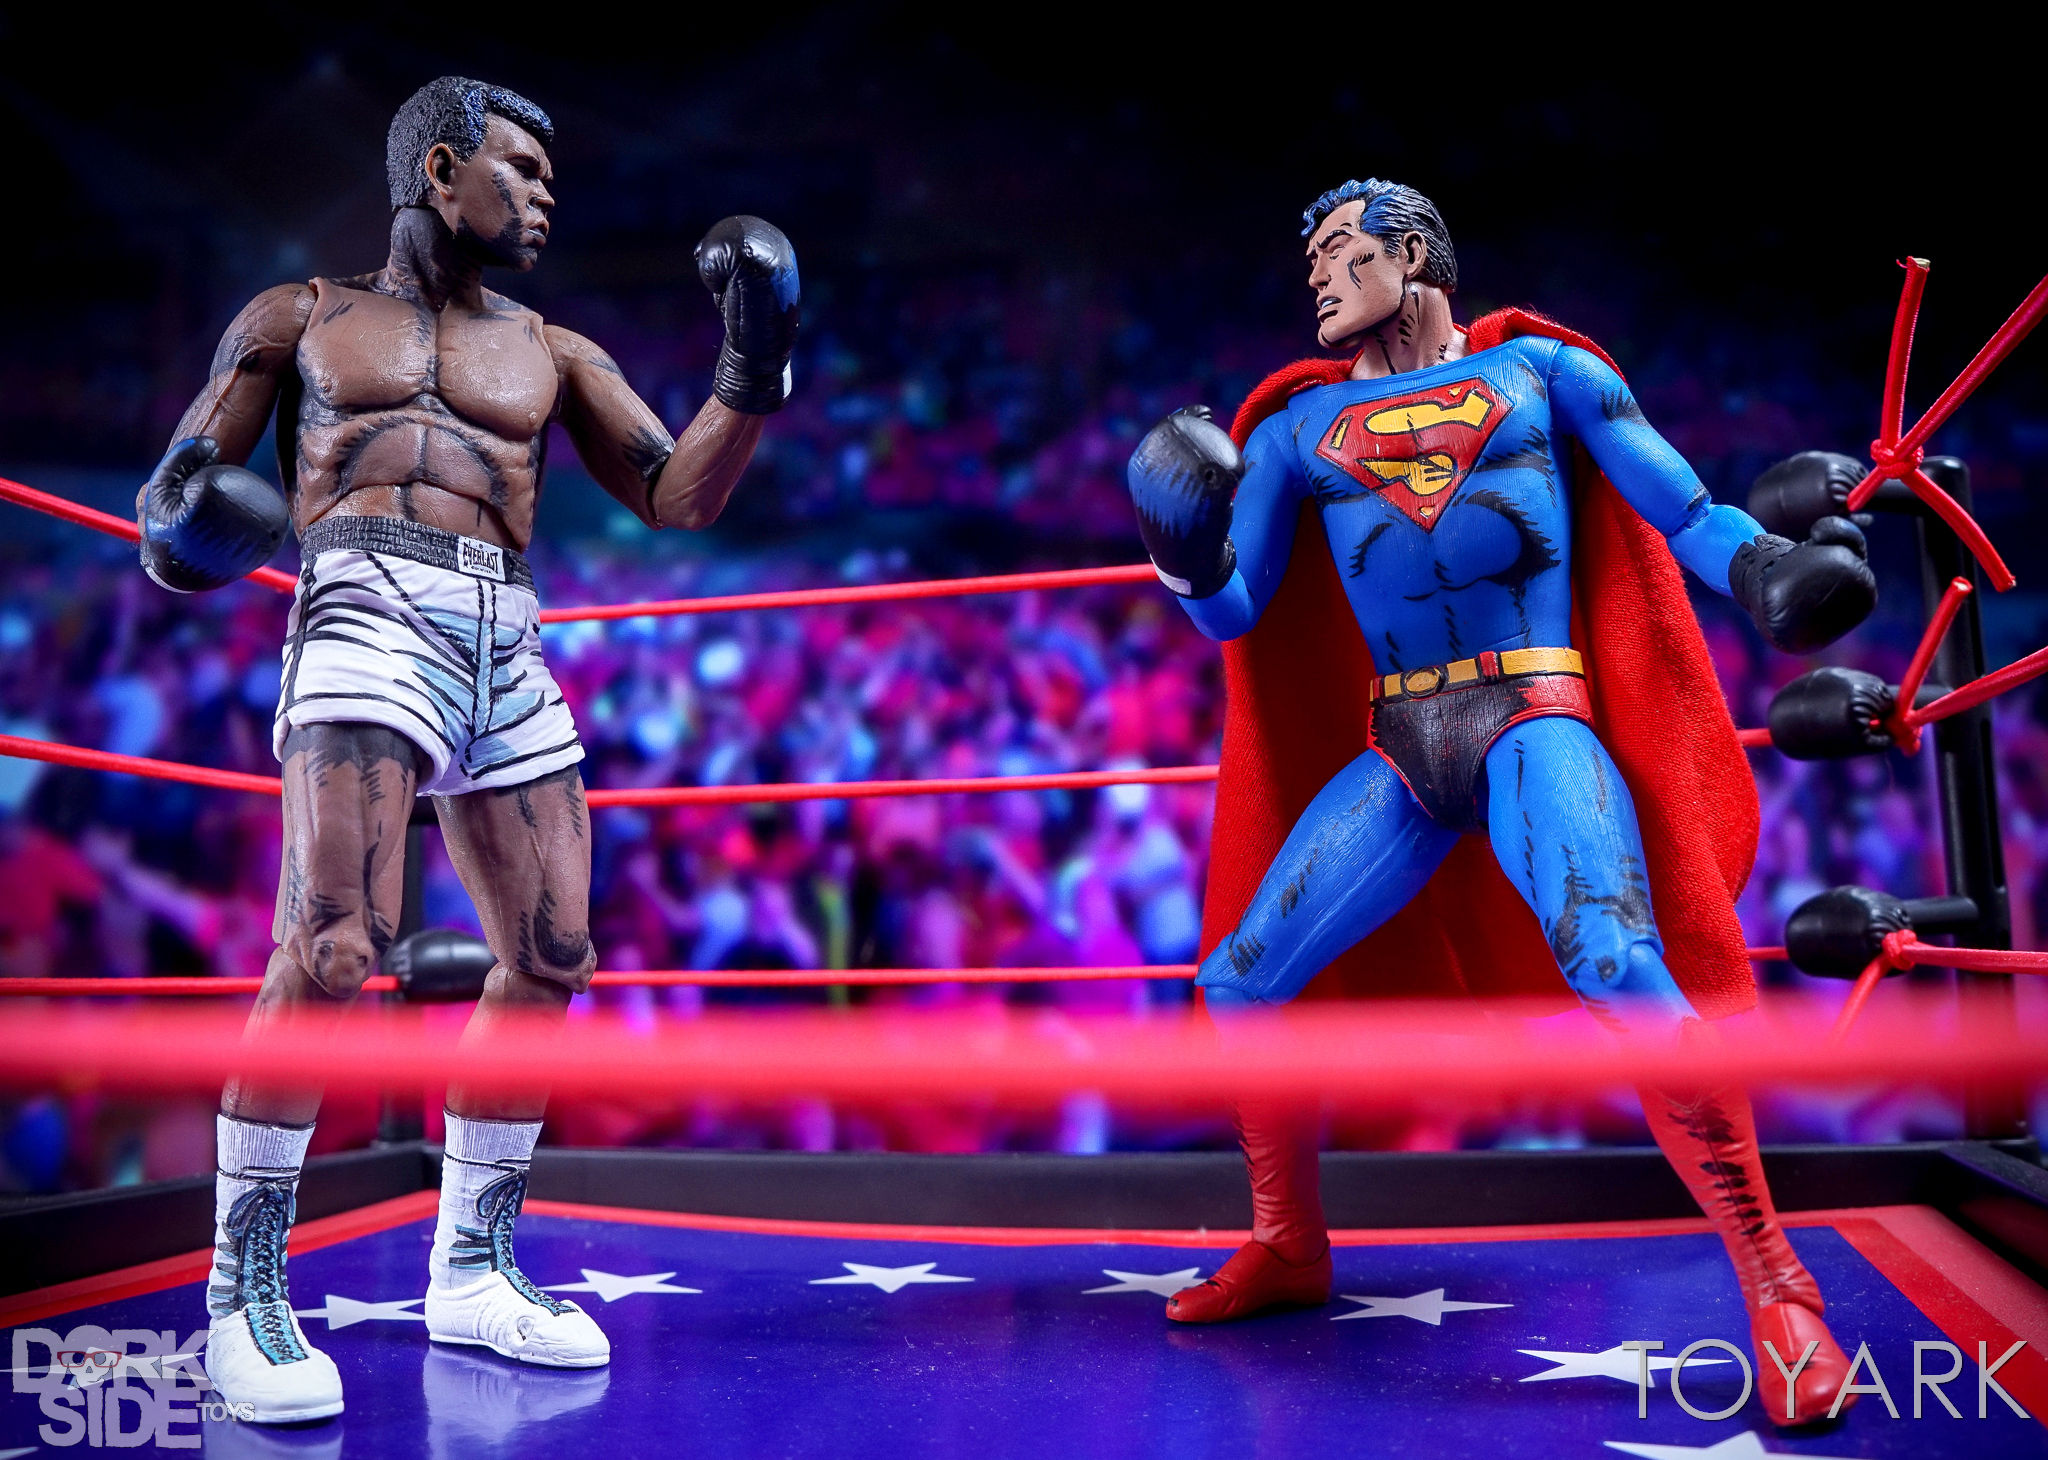 http://news.toyark.com/wp-content/uploads/sites/4/2017/02/NECA-Ali-vs-Superman-Set-032.jpg